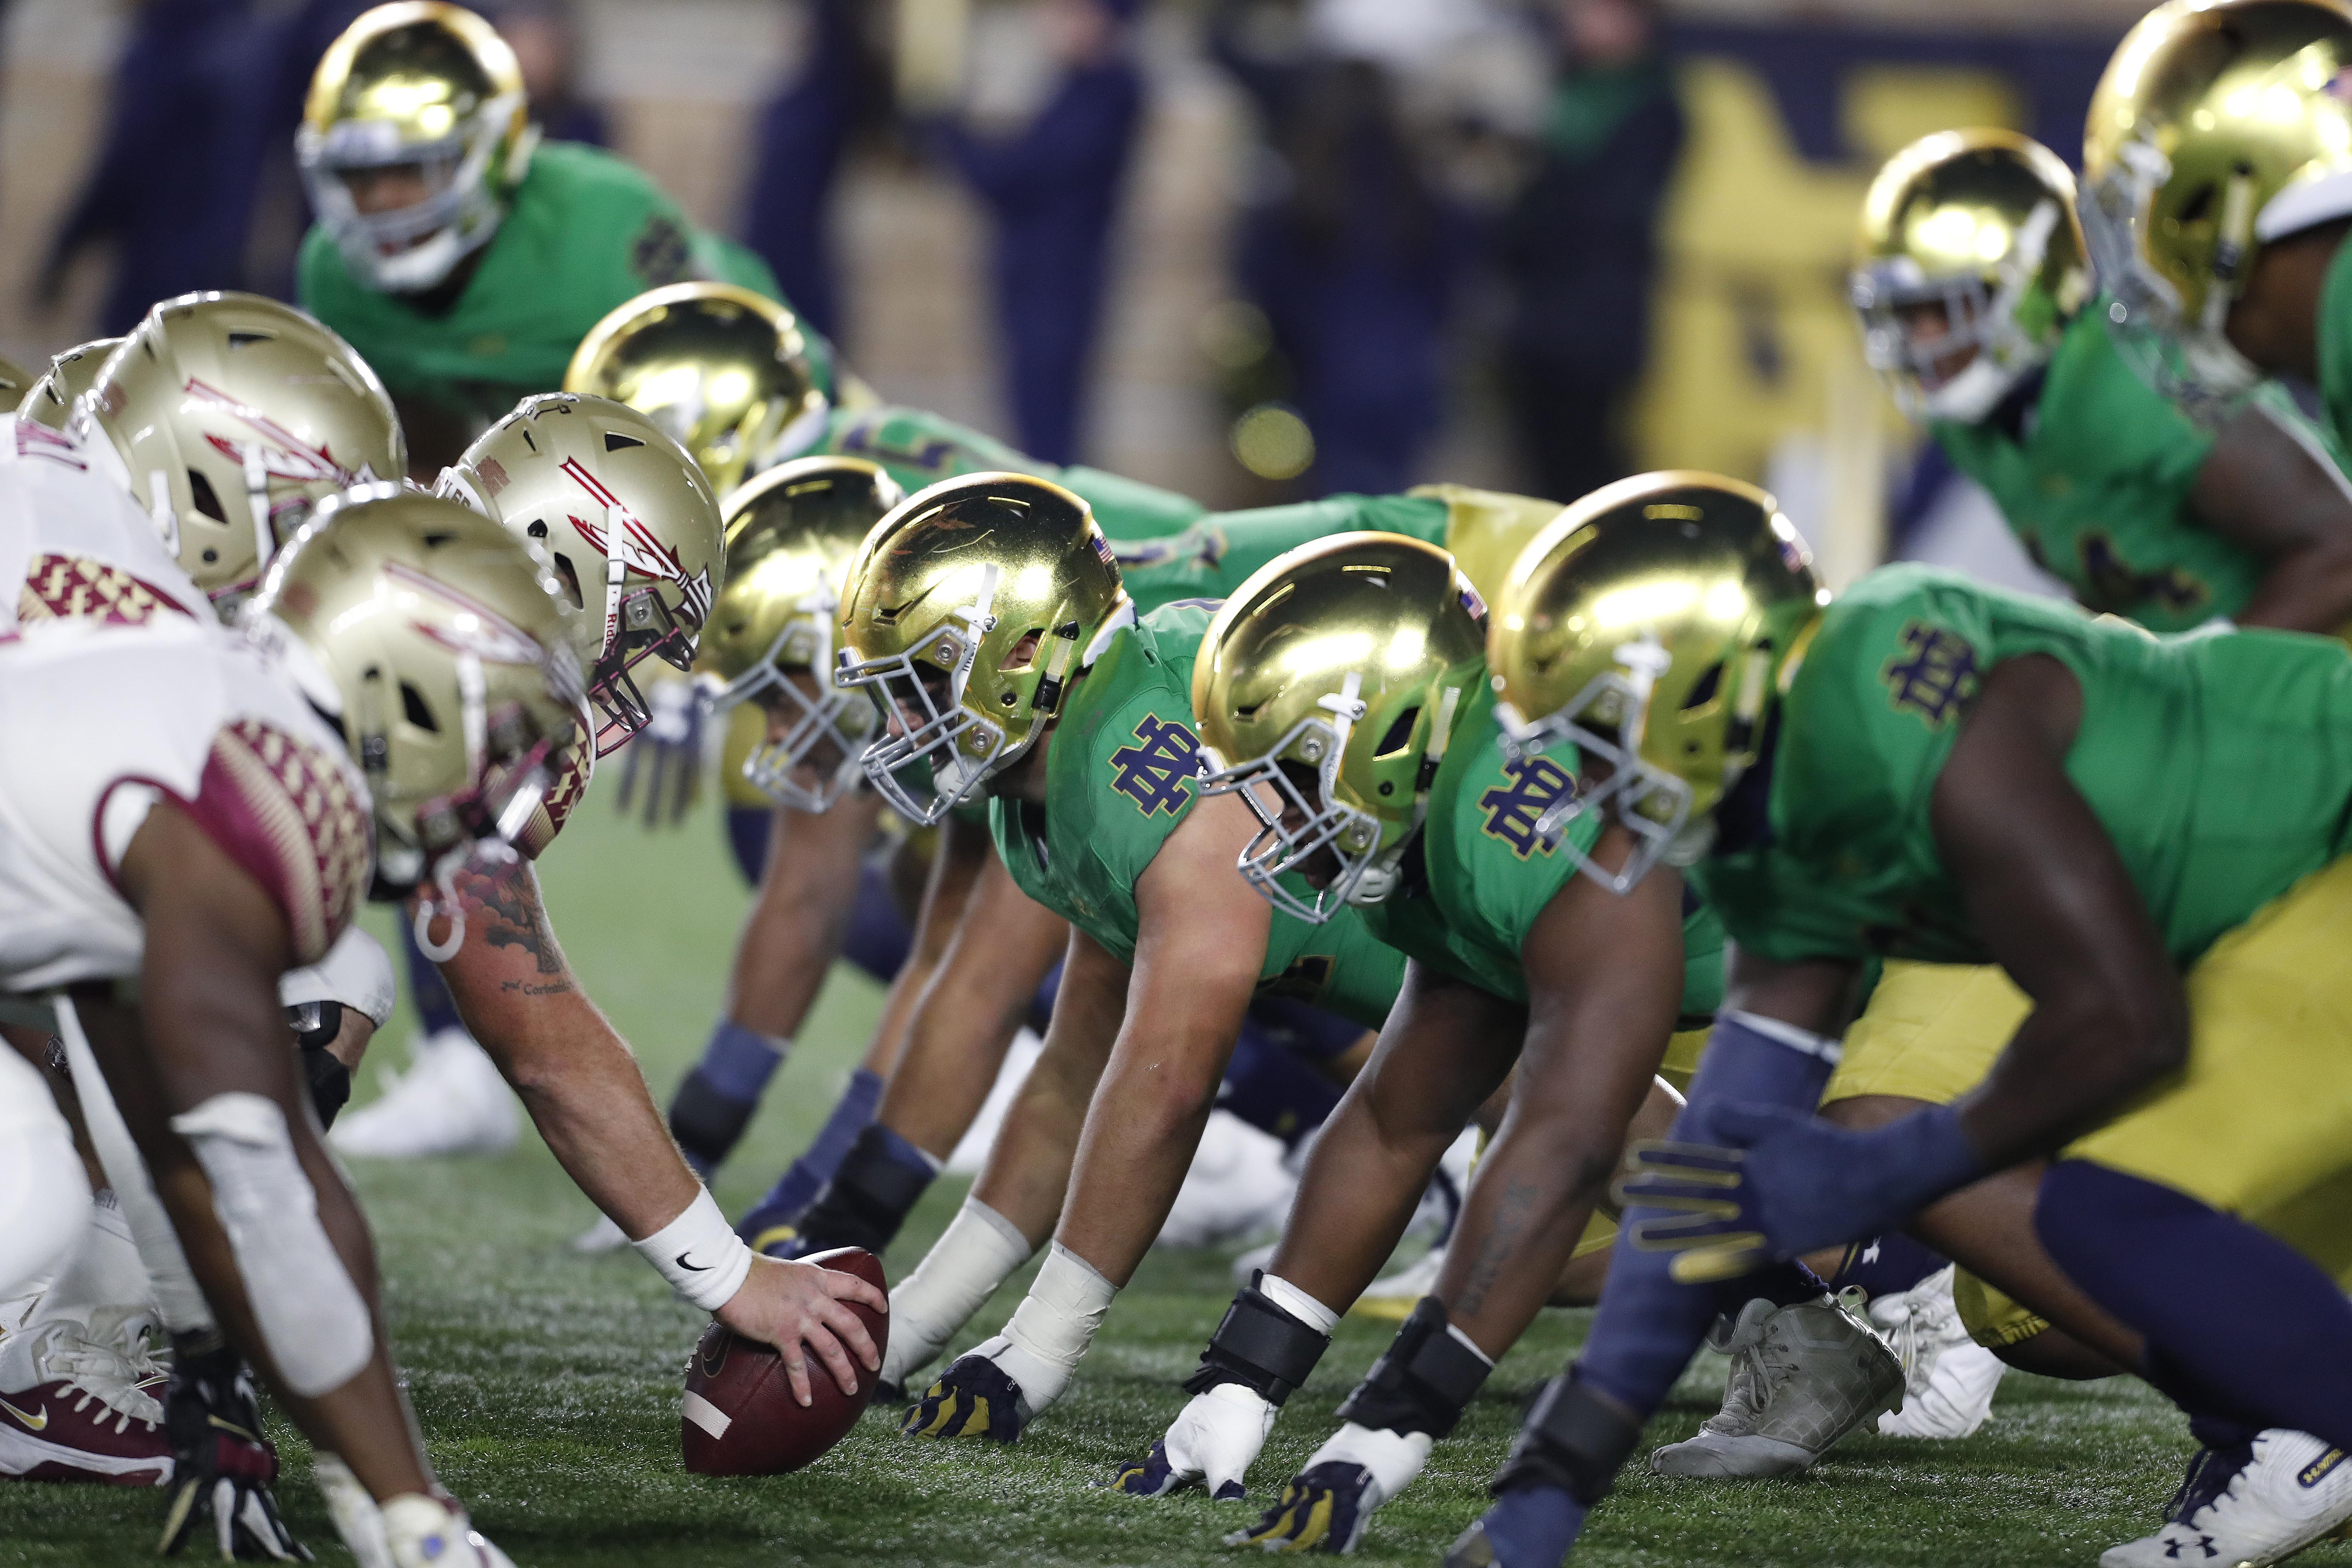 Notre Dame Football Teases Green Uniforms For 2019